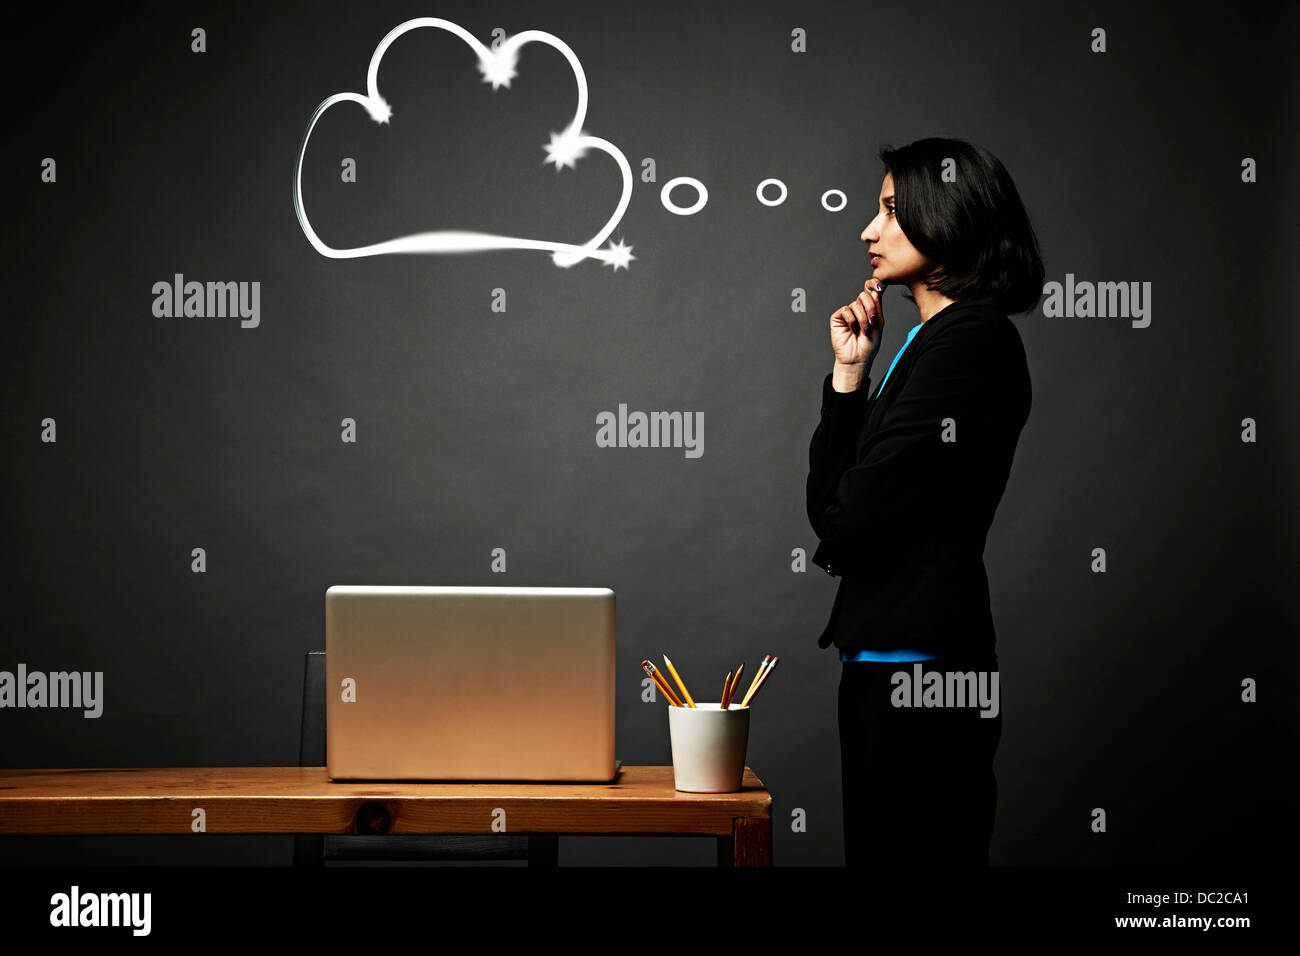 Woman contemplating problem Stock Photo